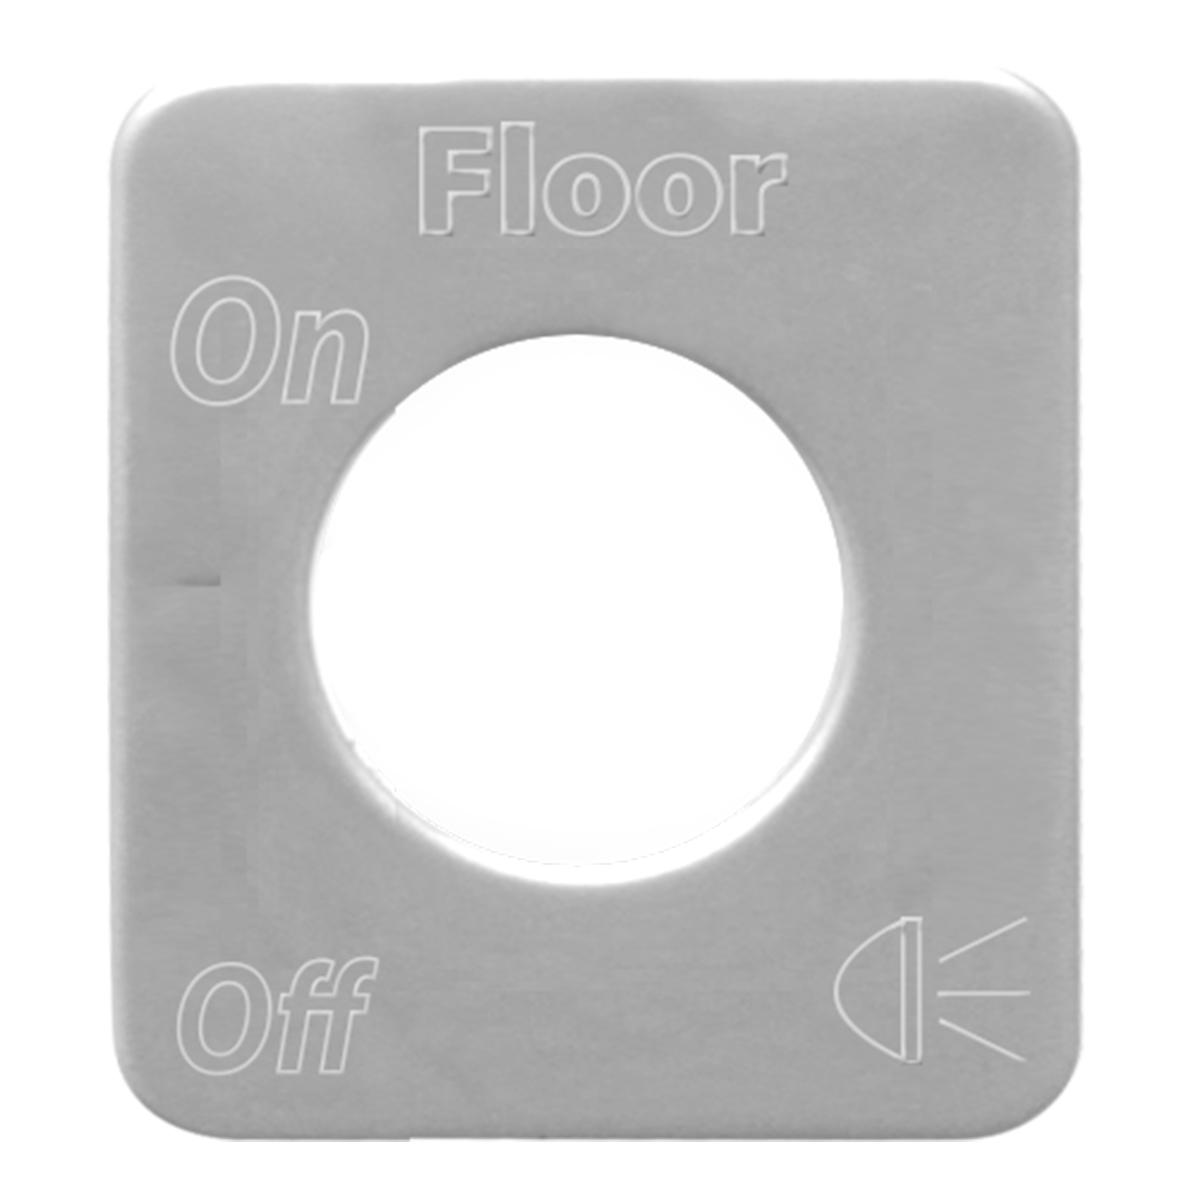 68539 Stainless Steel Floor Light Switch Plate for KW